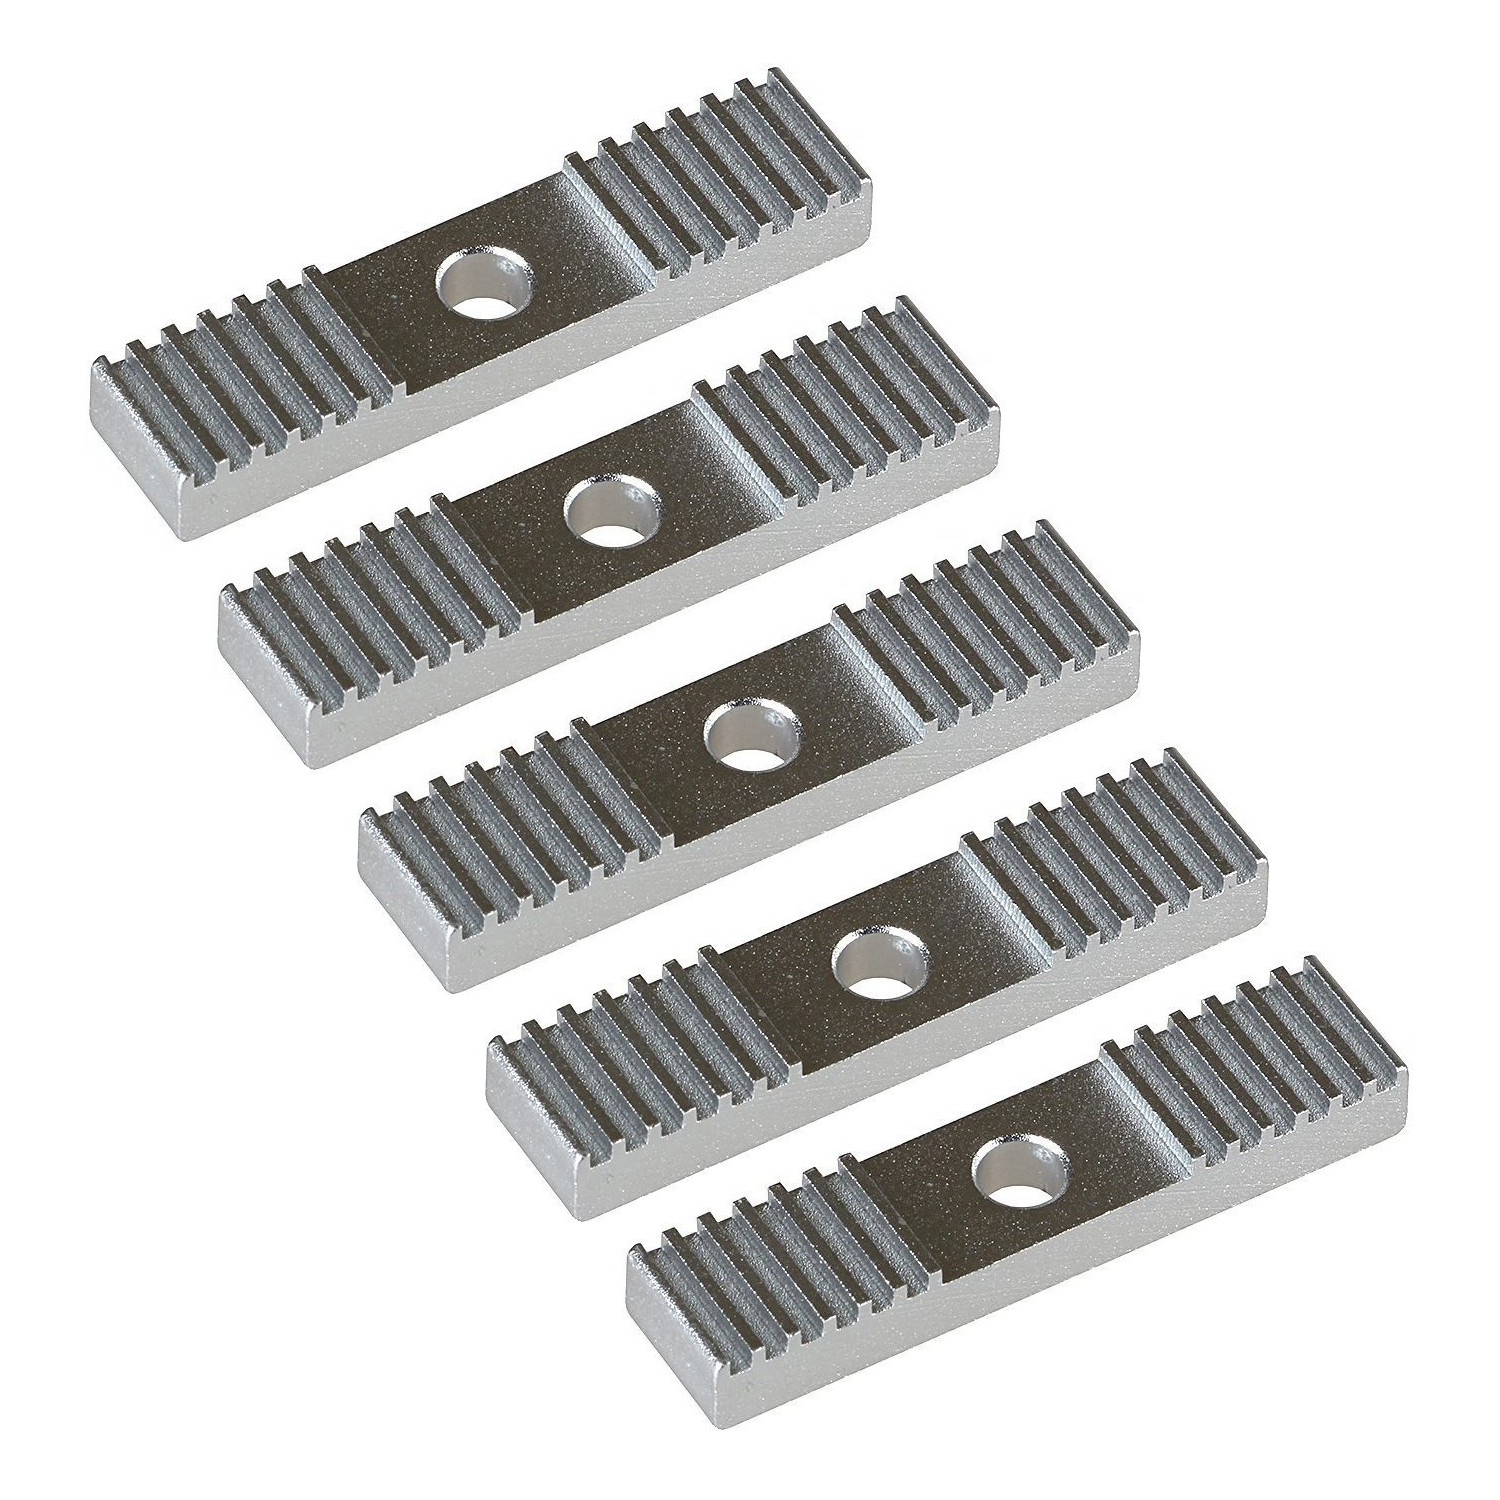 5pcs 2GT Timing Belt Aluminum Gear Clamp Mount Block Pack